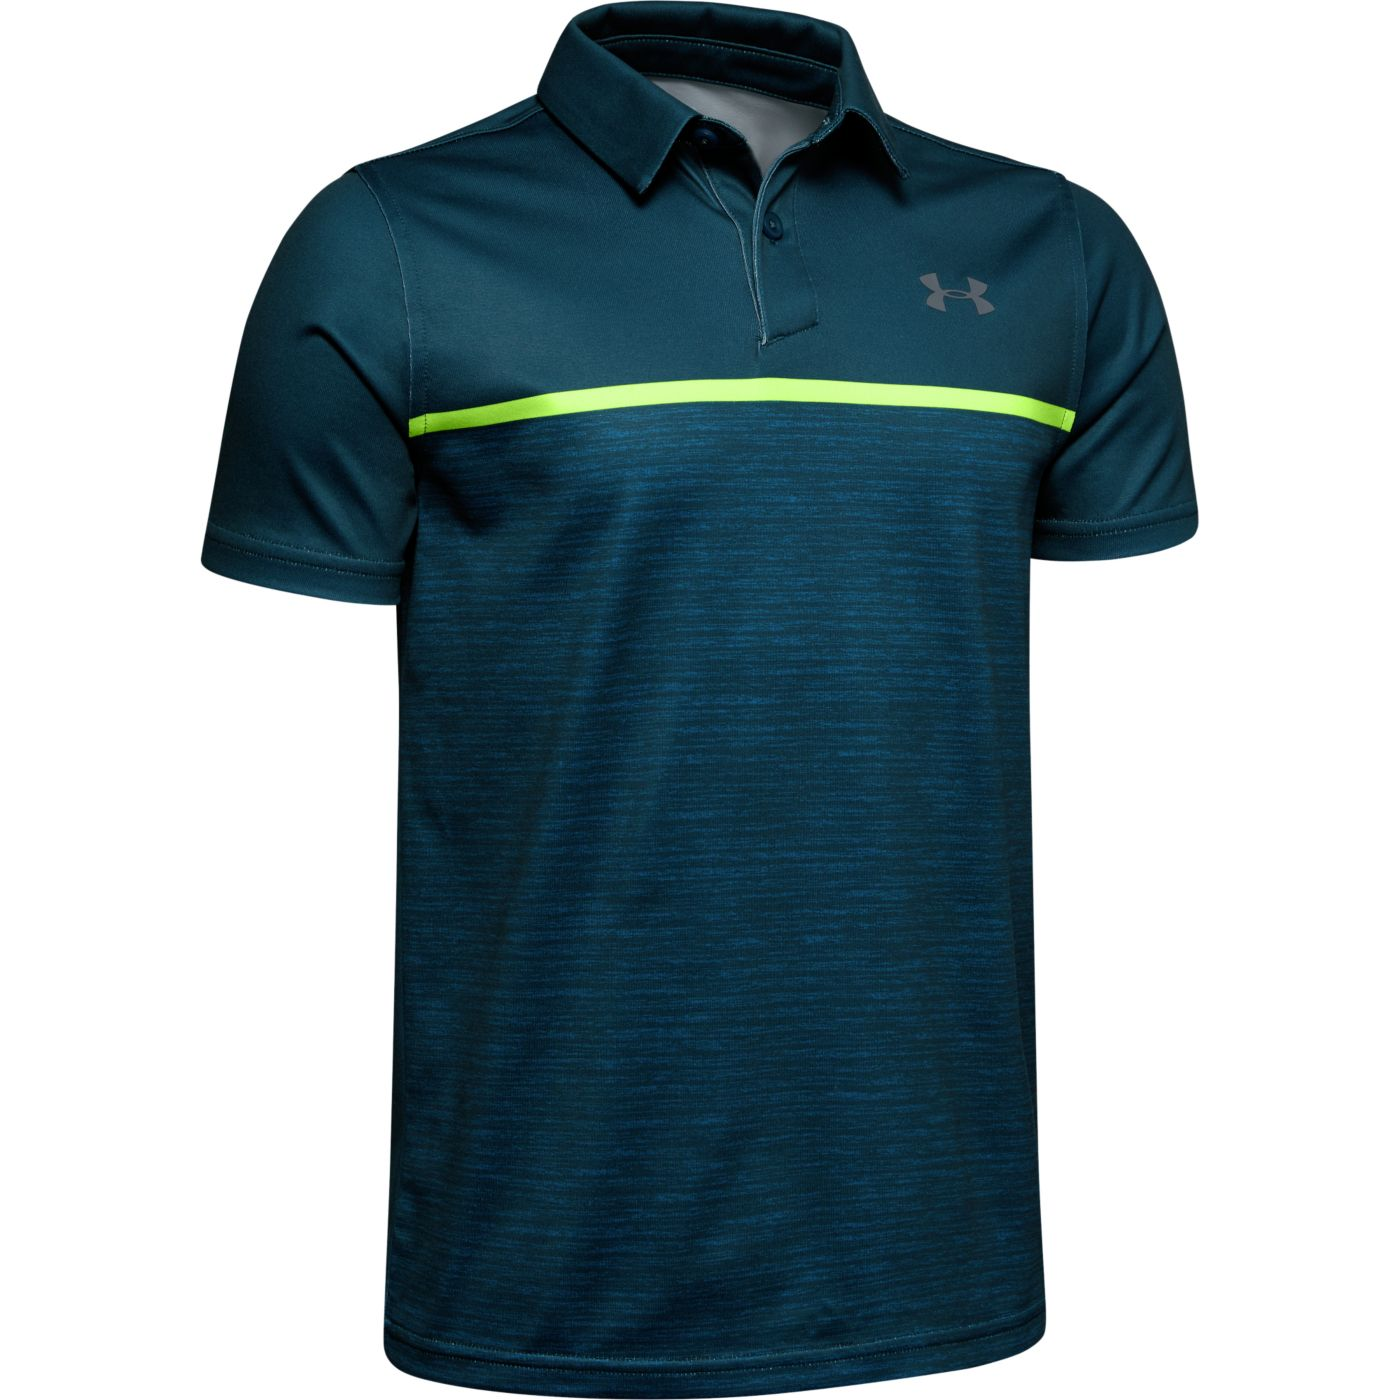 Under Armour Boys' Championship Chest Stripe Golf Polo